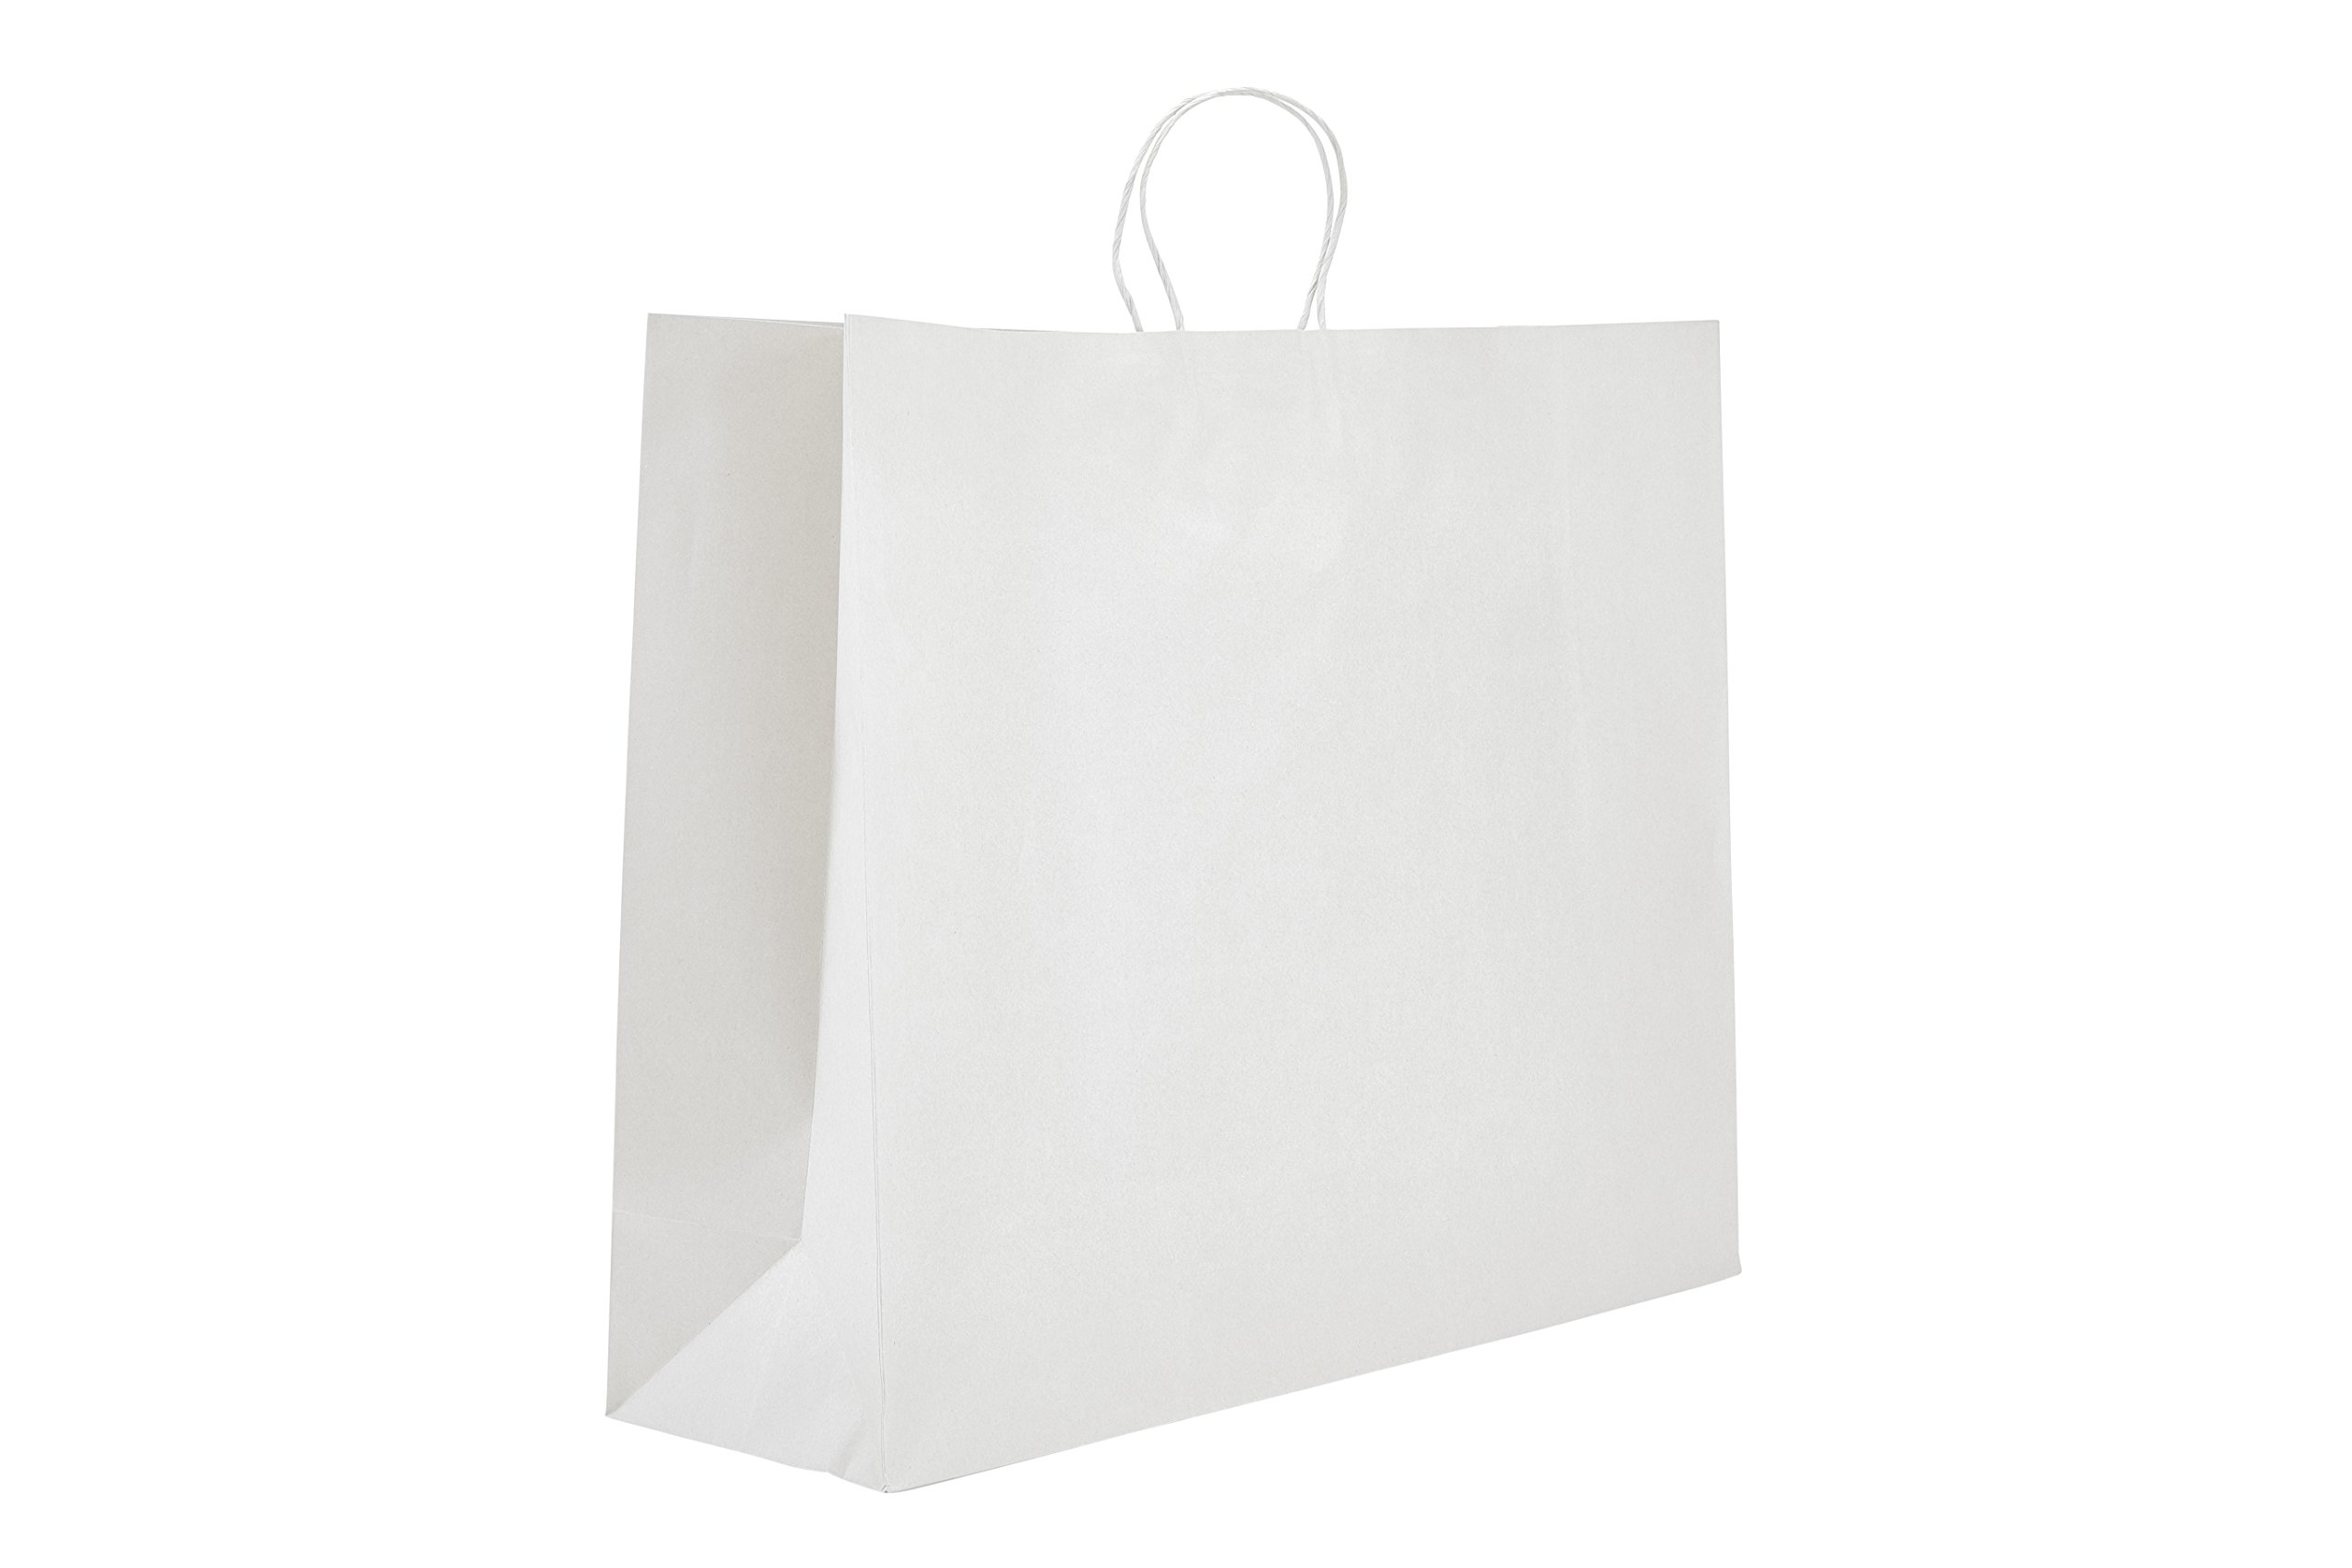 PTP - 24'' x 7.25'' x 18.75'' White Kraft Paper Gift Tote Bags - 125 count | Perfect for Birthdays, Weddings, Holidays and All Occassions |